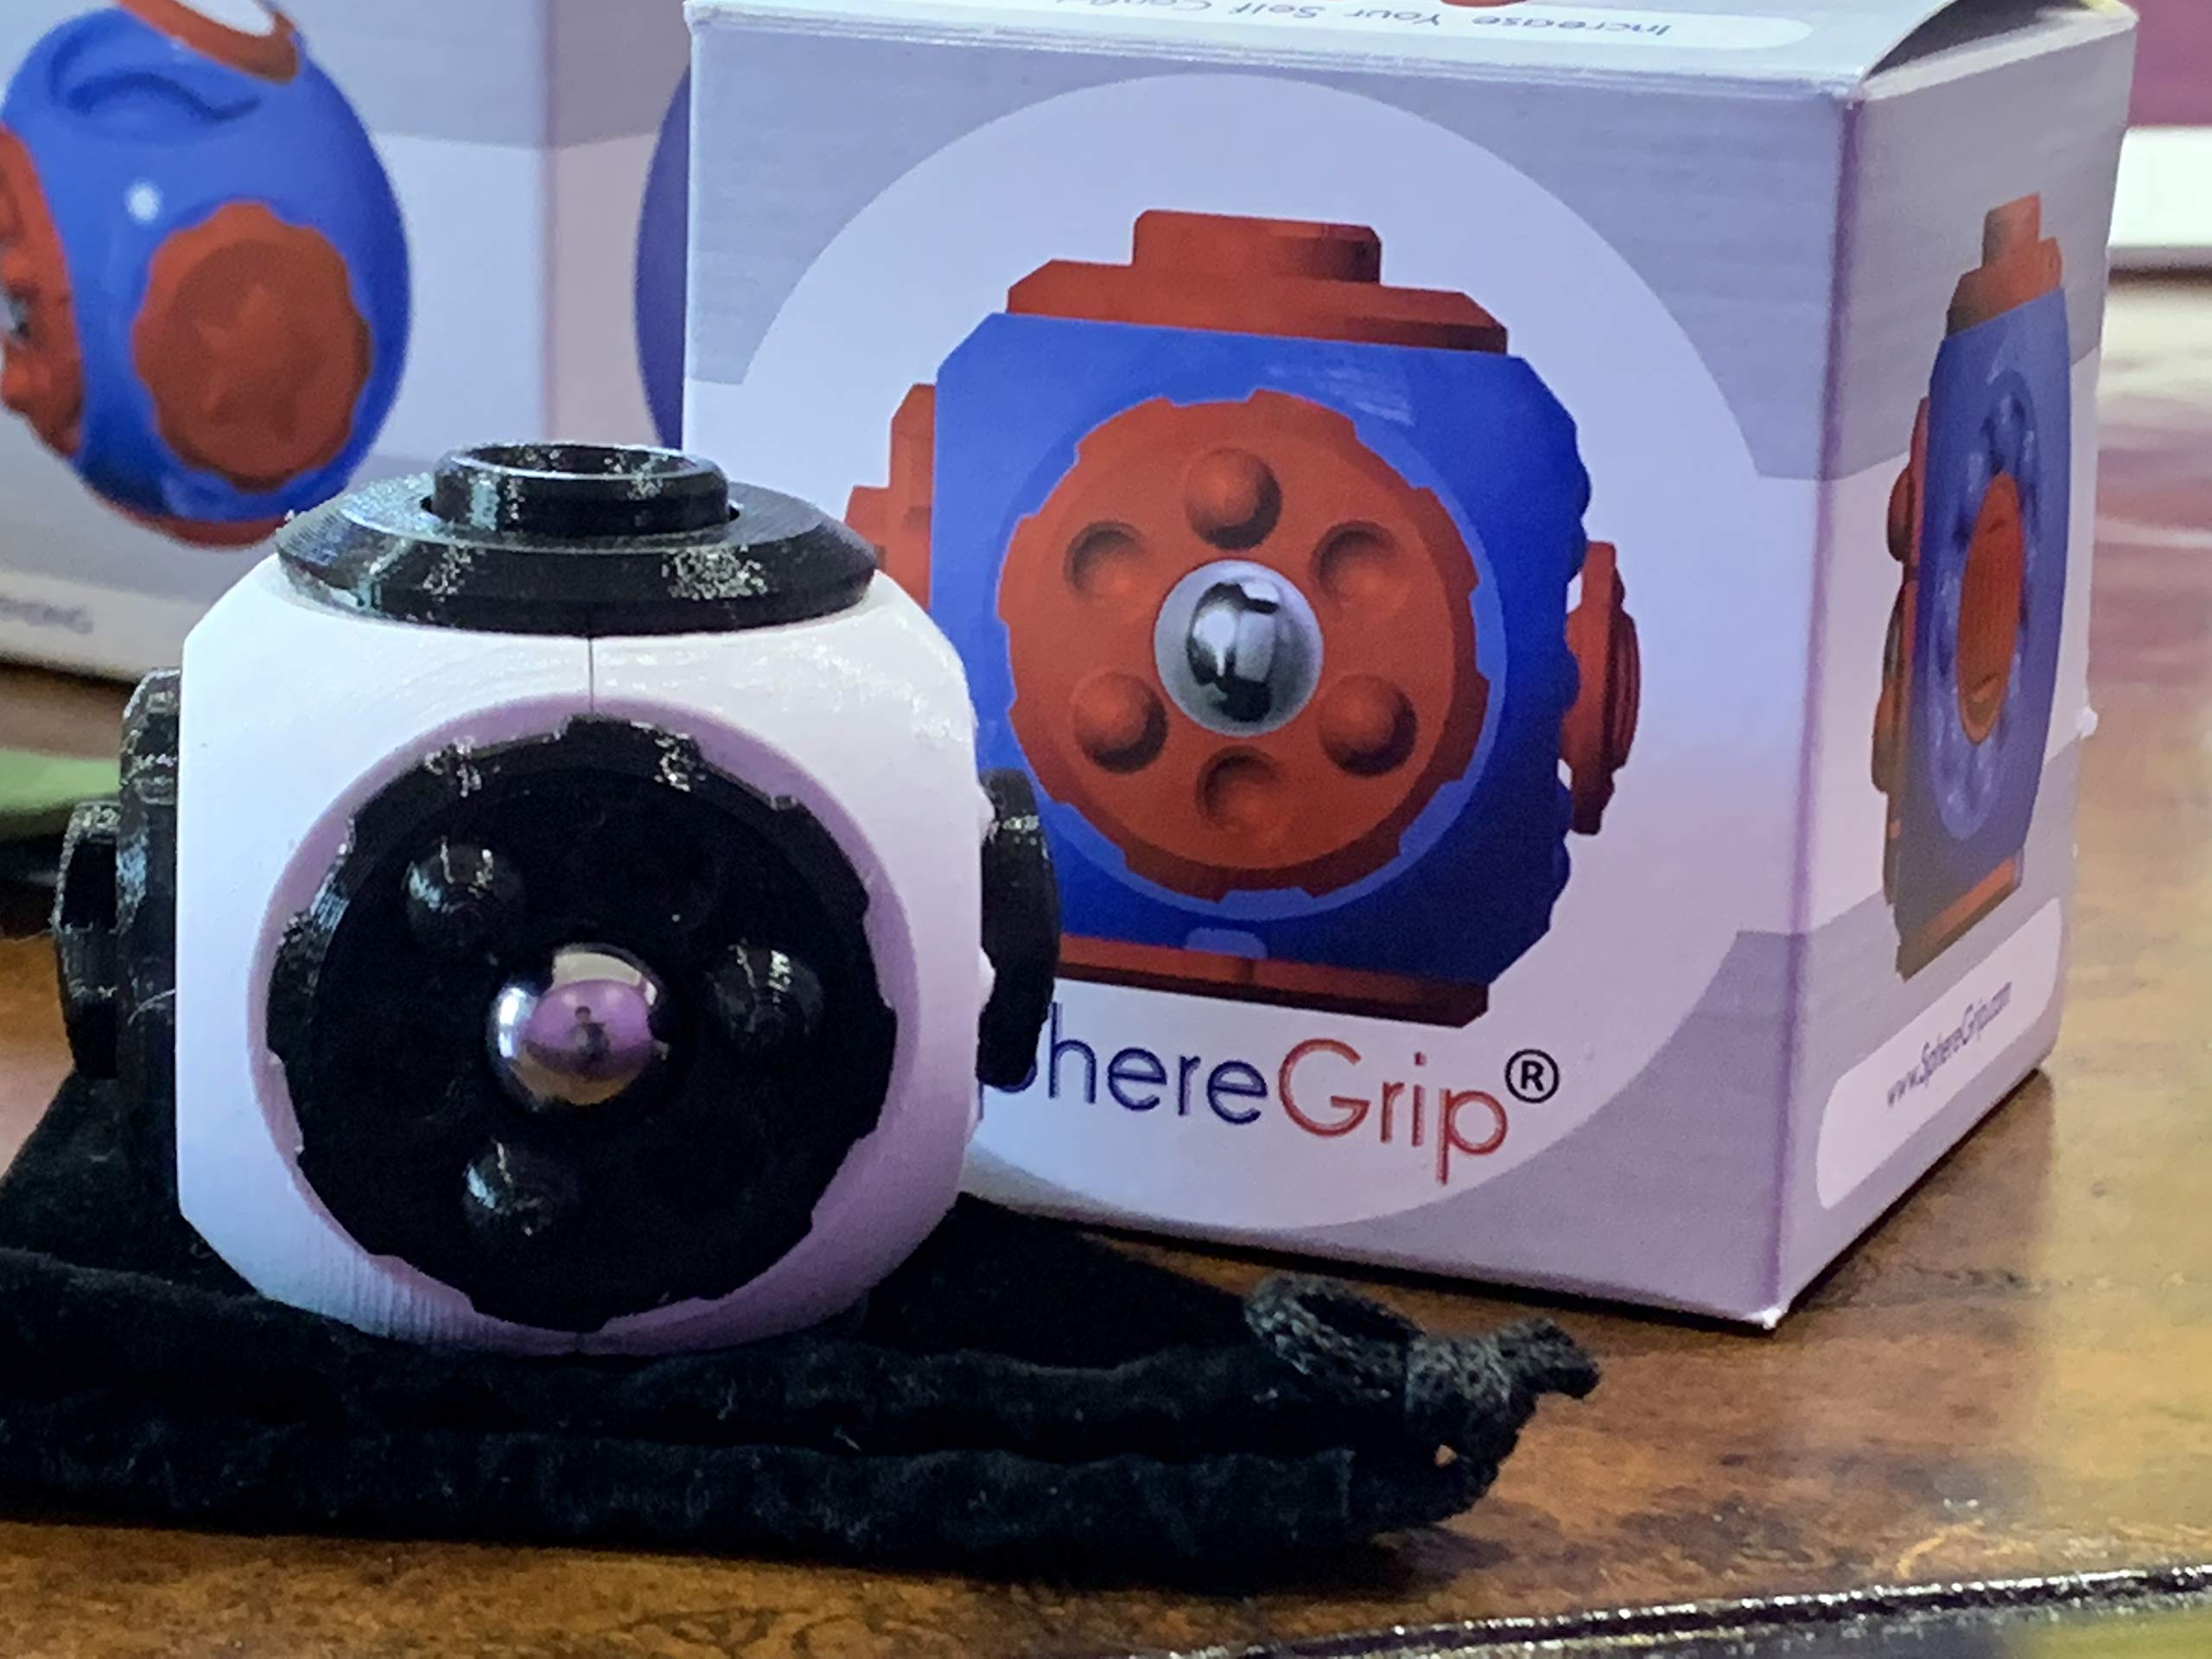 SphereGrip, Fidget toy, Reduce Anxiety and Stress, Increase Self-confidence, Fidget, Storage, Mirror (All 6 combinations) by Arbi Design (Image #4)